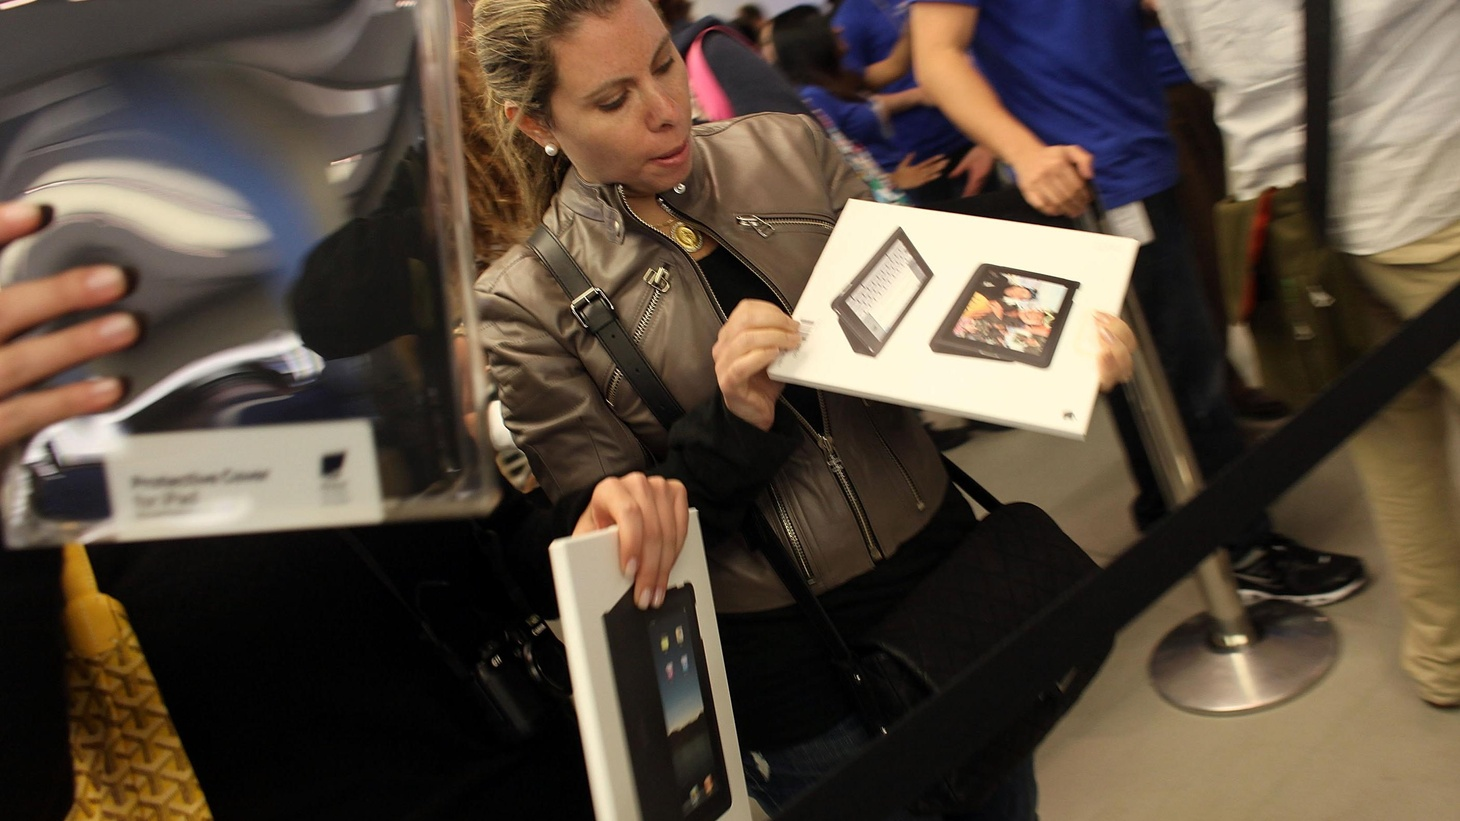 Apple has a knack for creating things we didn't even know we needed -- or wanted. Some three hundred thousand Apple lovers bought iPads this weekend. Guest host Sara Terry learns what Apple's latest device delivers and where it falls short. Also, the Taliban attacks the US Consulate in Peshawar, Pakistan, and Michael Steel Rocks the boat at the Republican National Committee.